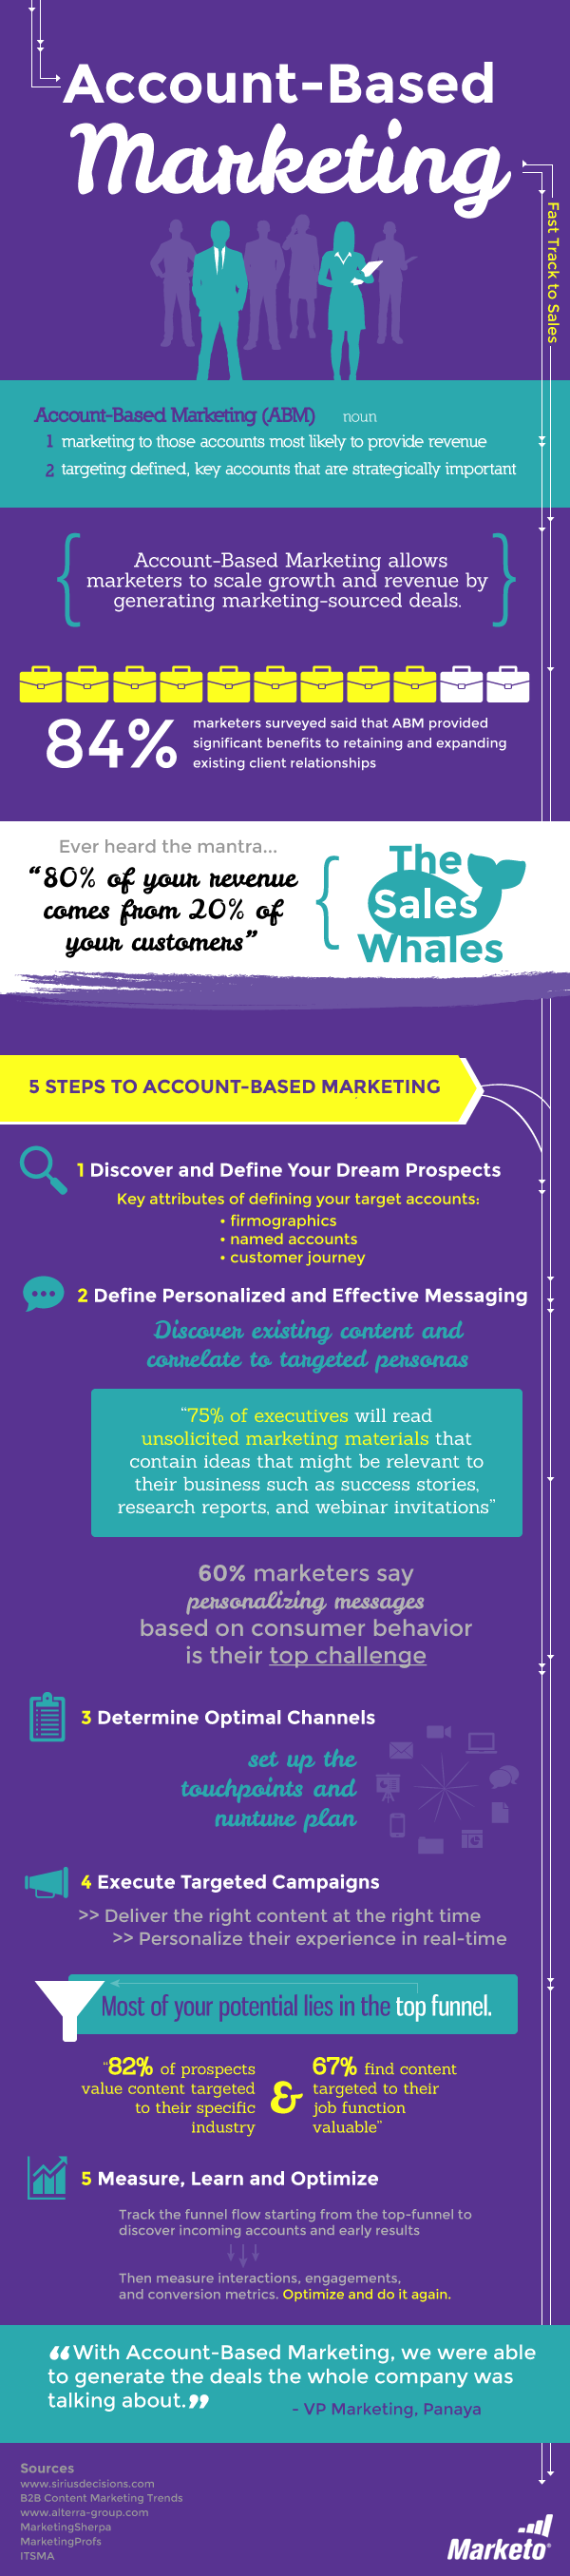 account-based-marketing-marketo-infographic.png